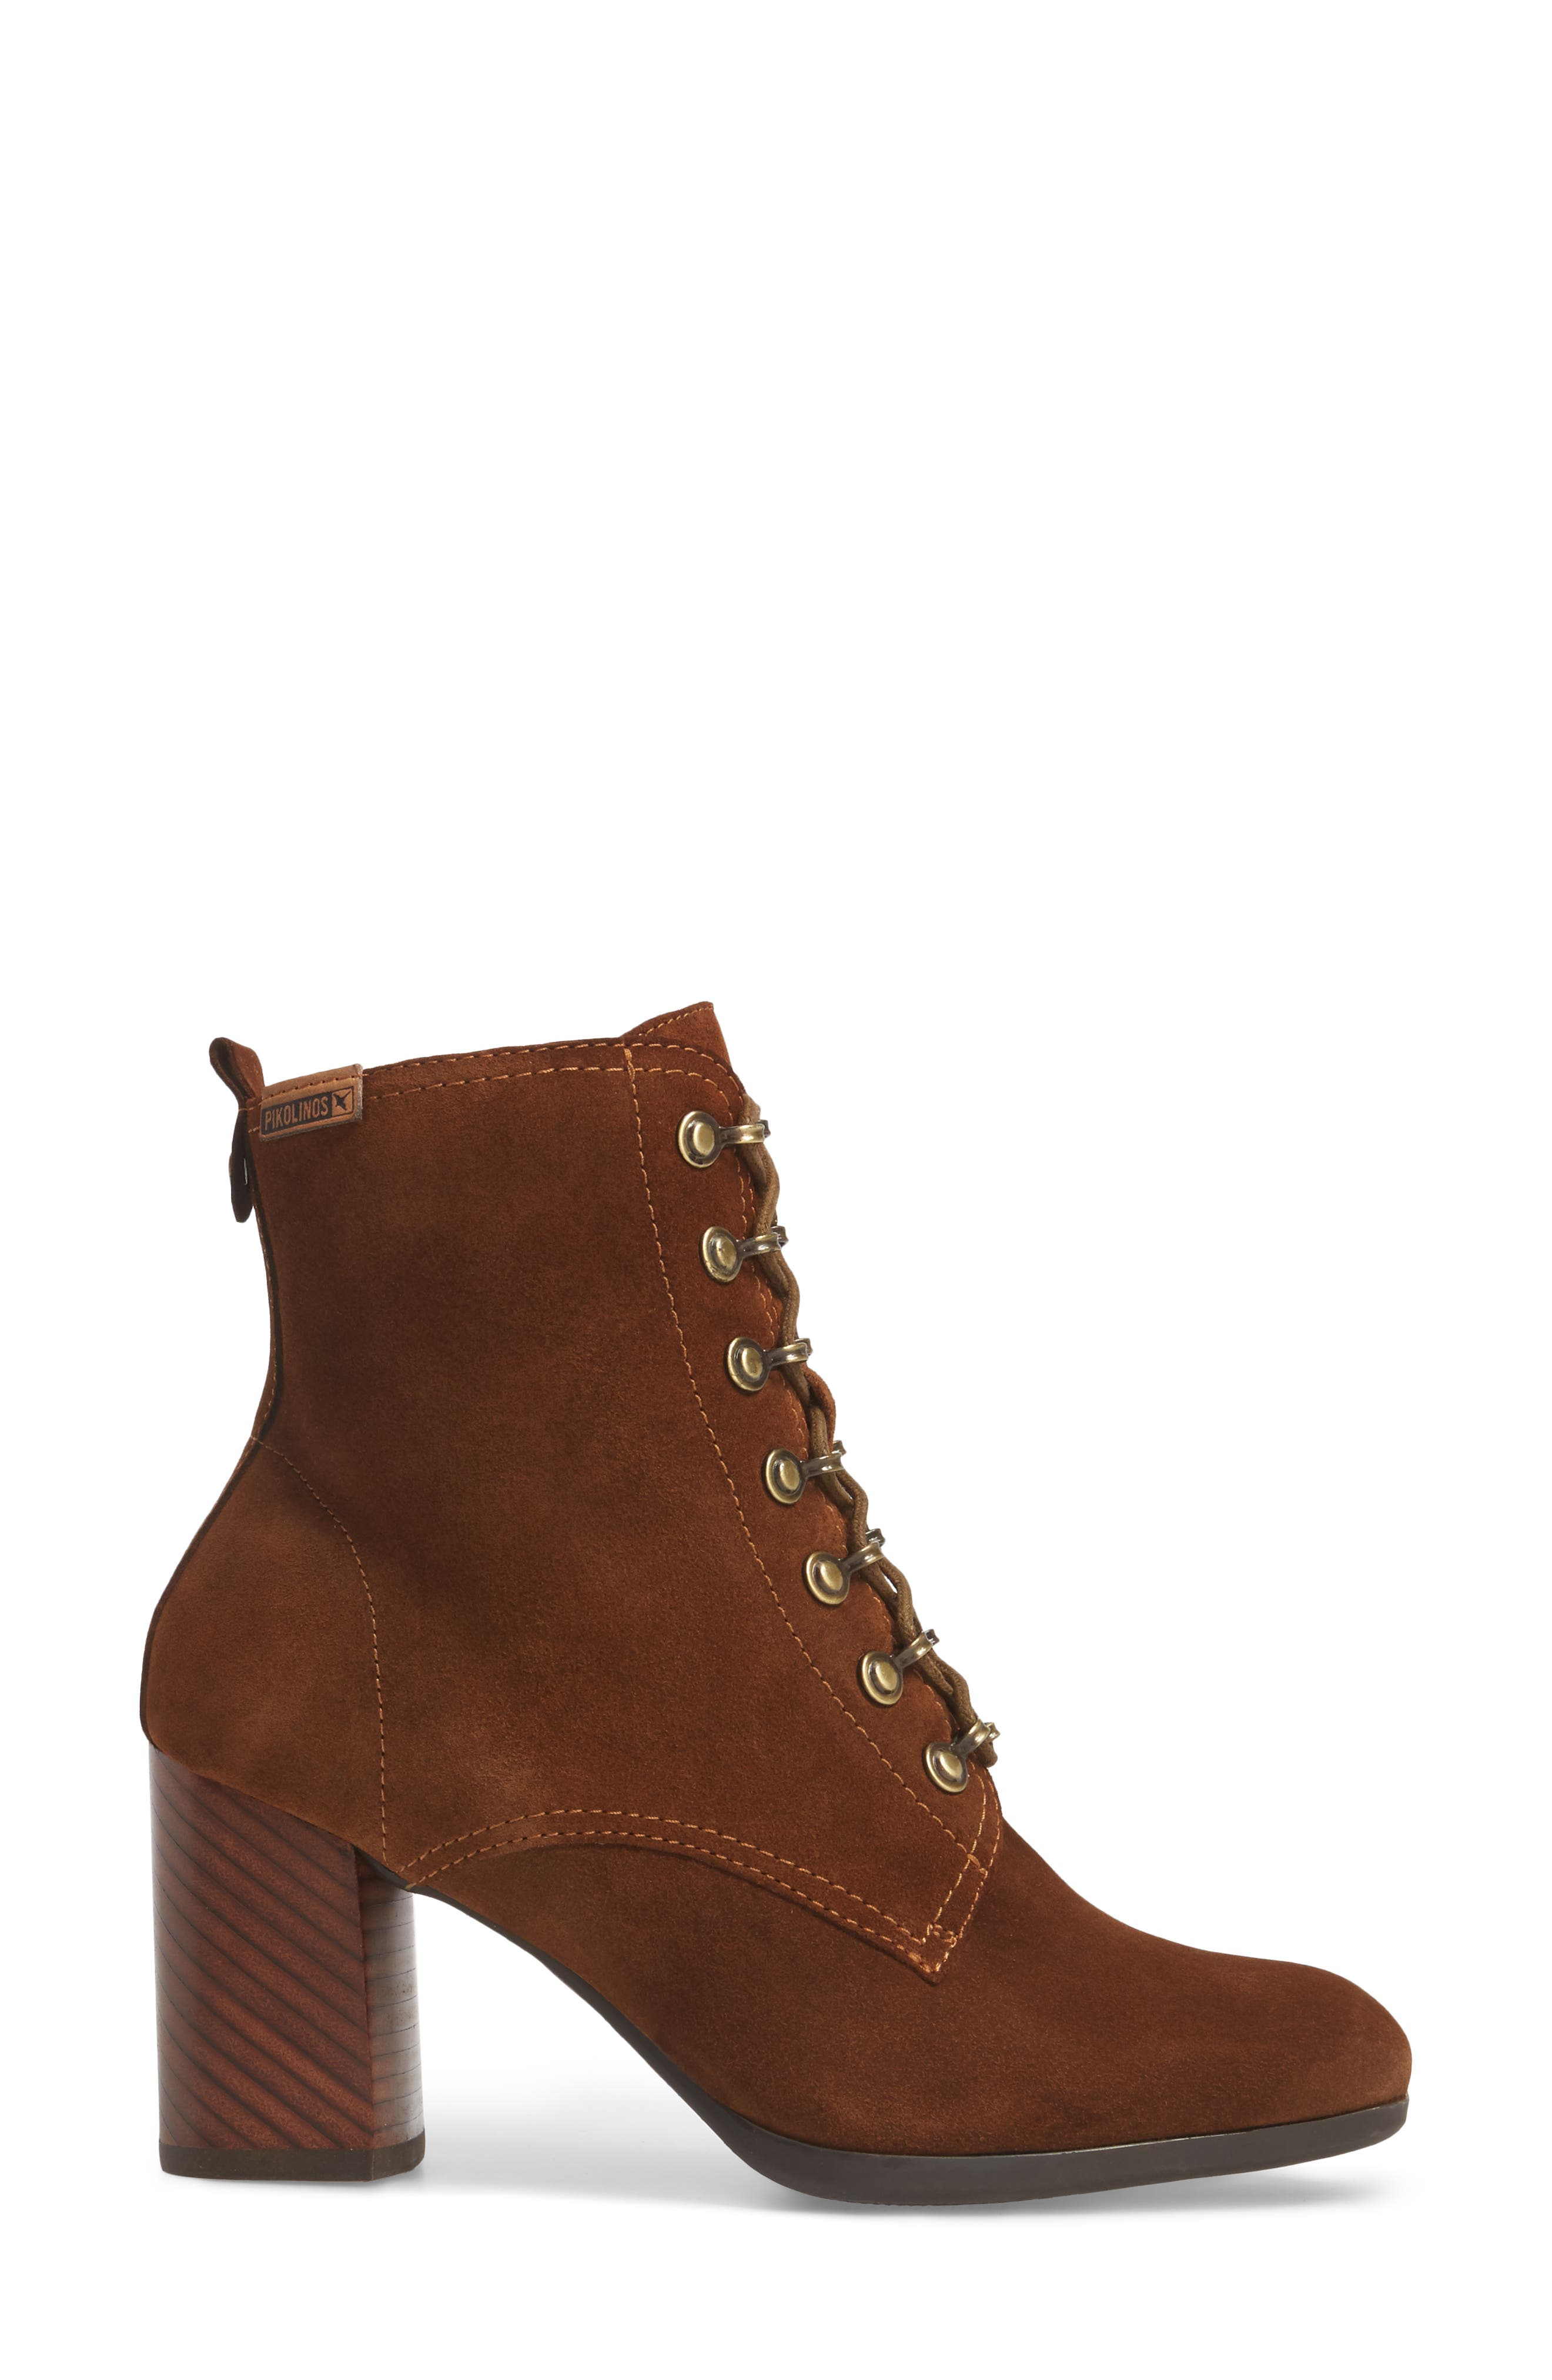 Aragon Lace-Up Boot,                             Alternate thumbnail 3, color,                             Brandy Leather